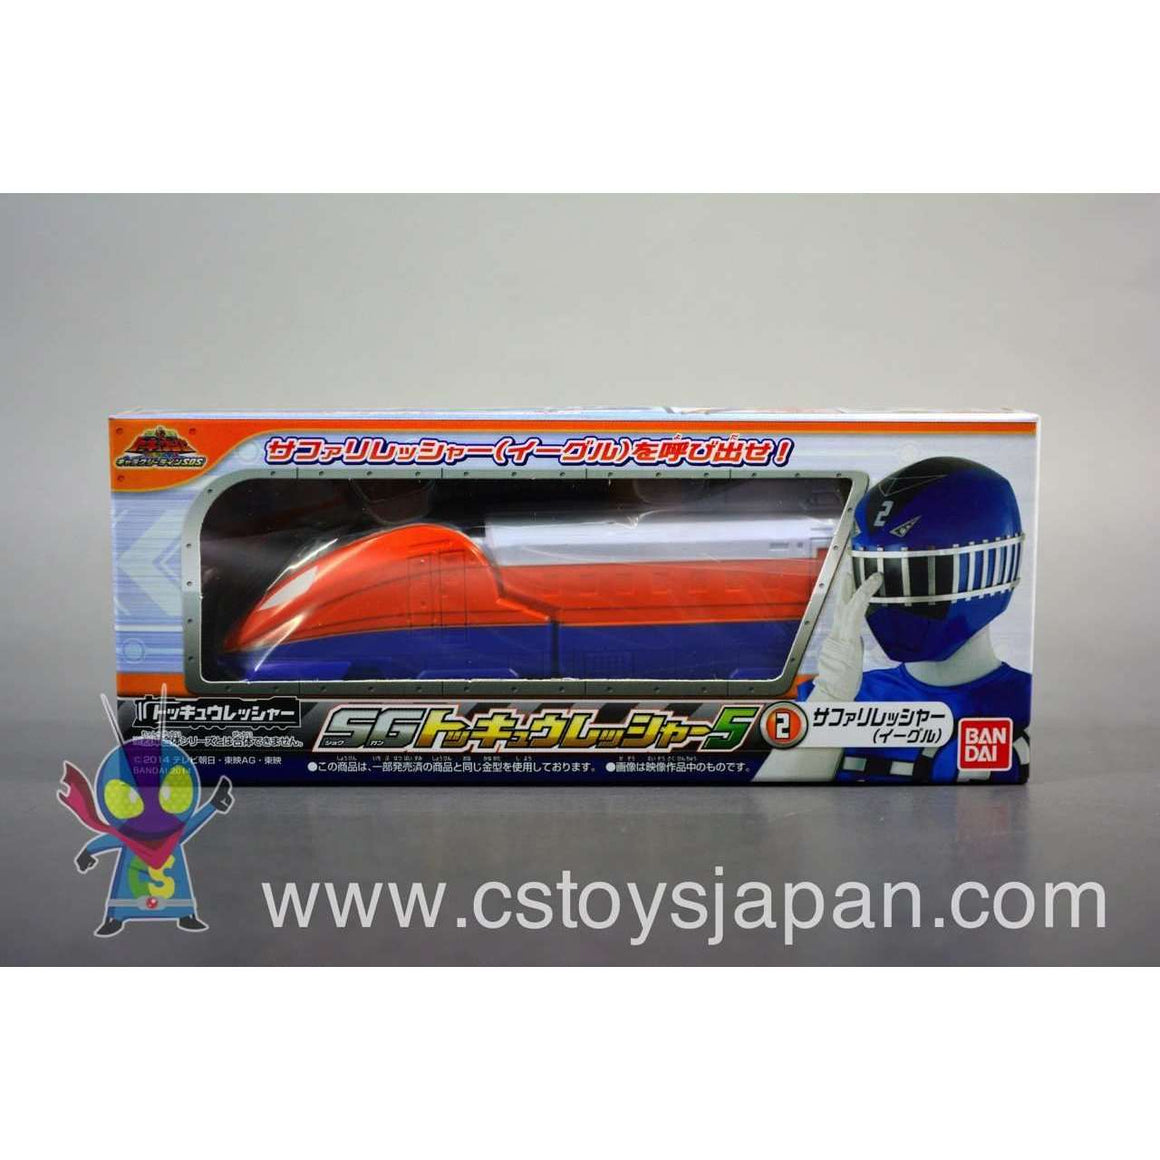 CSTOYS INTERNATIONAL:Candy Toy ToQ Ressha 5 2. Safari Ressha (Eagle)